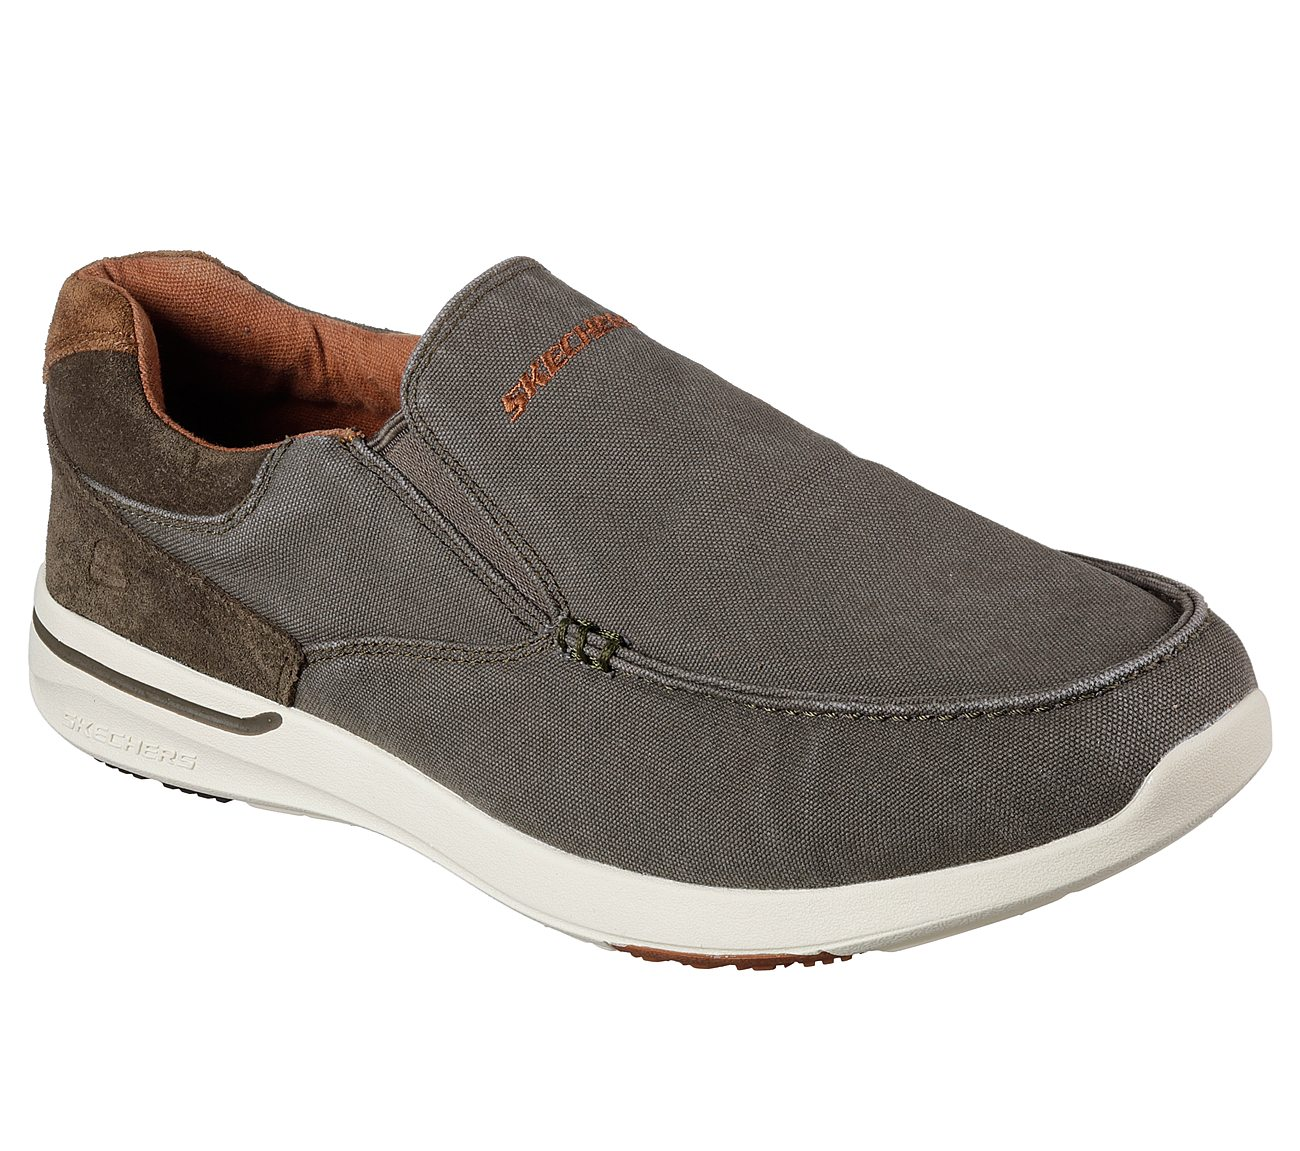 Relaxed Fit®: Elent - Olution SKECHERS 5pHJq7Ey